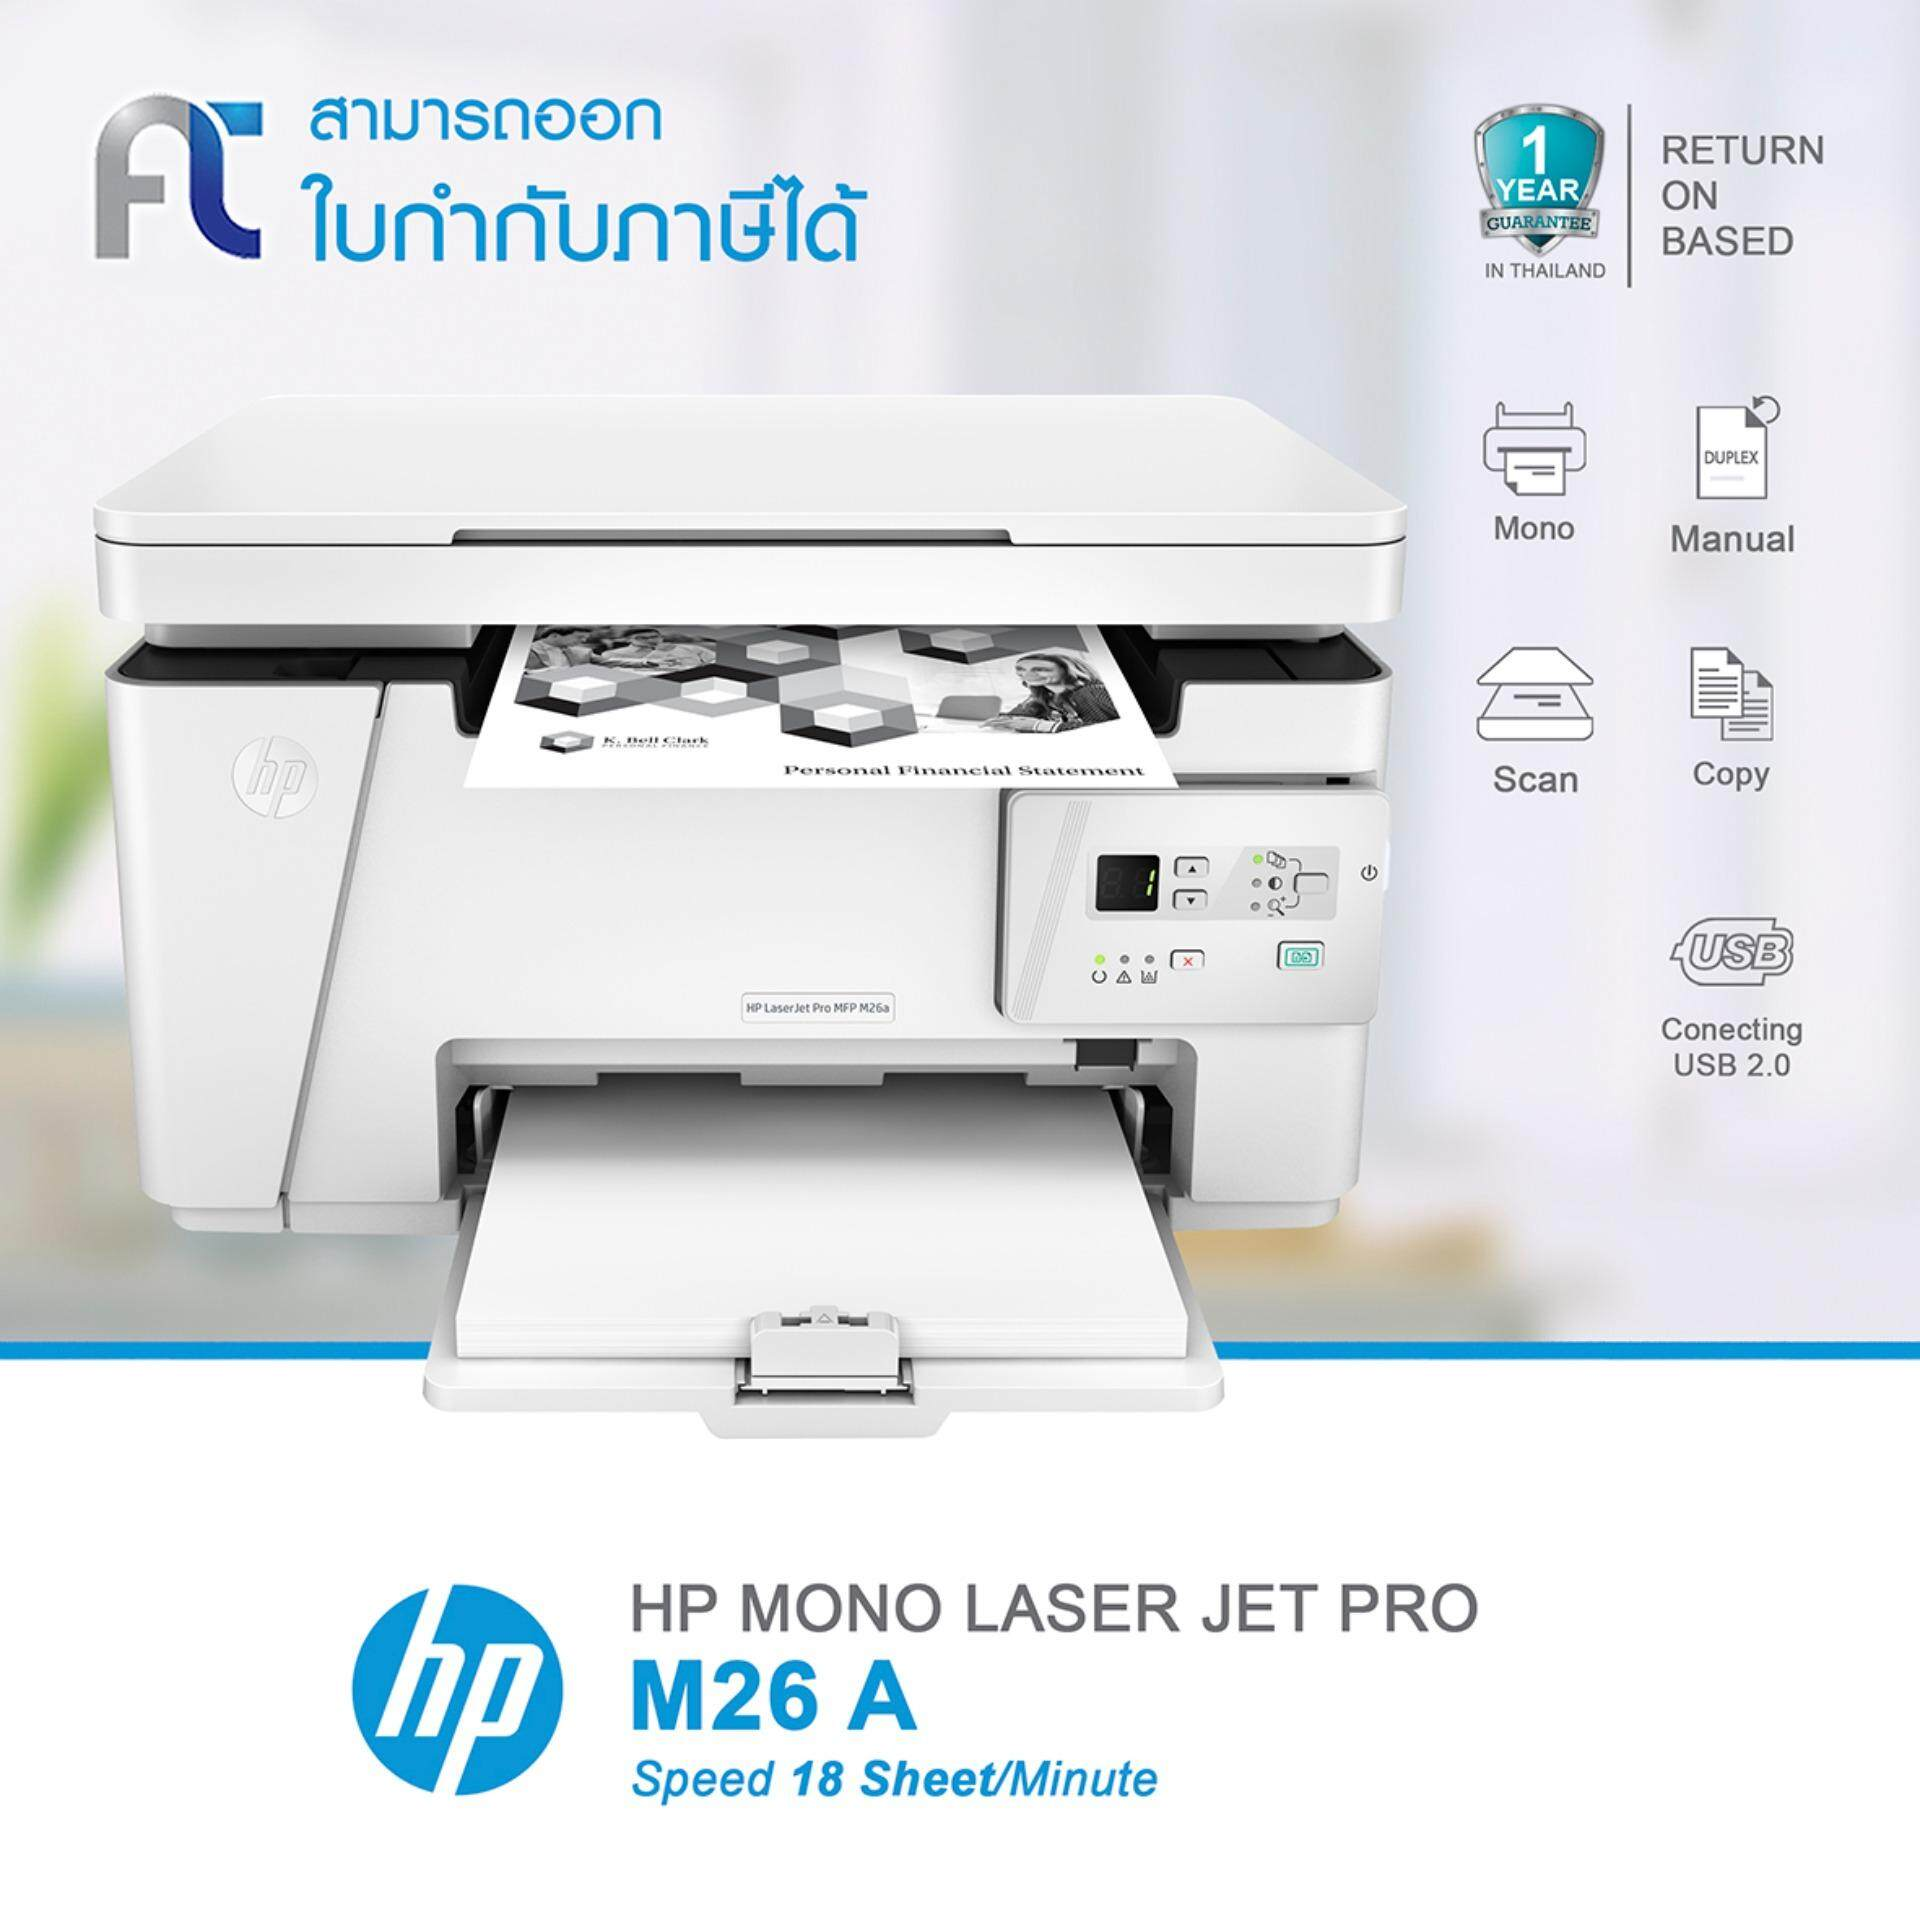 โปรโมชั่น 1 Year Warranty Hp Laserjet Pro Mfp M26A Printer Print Copy Scan T0L49A Hp